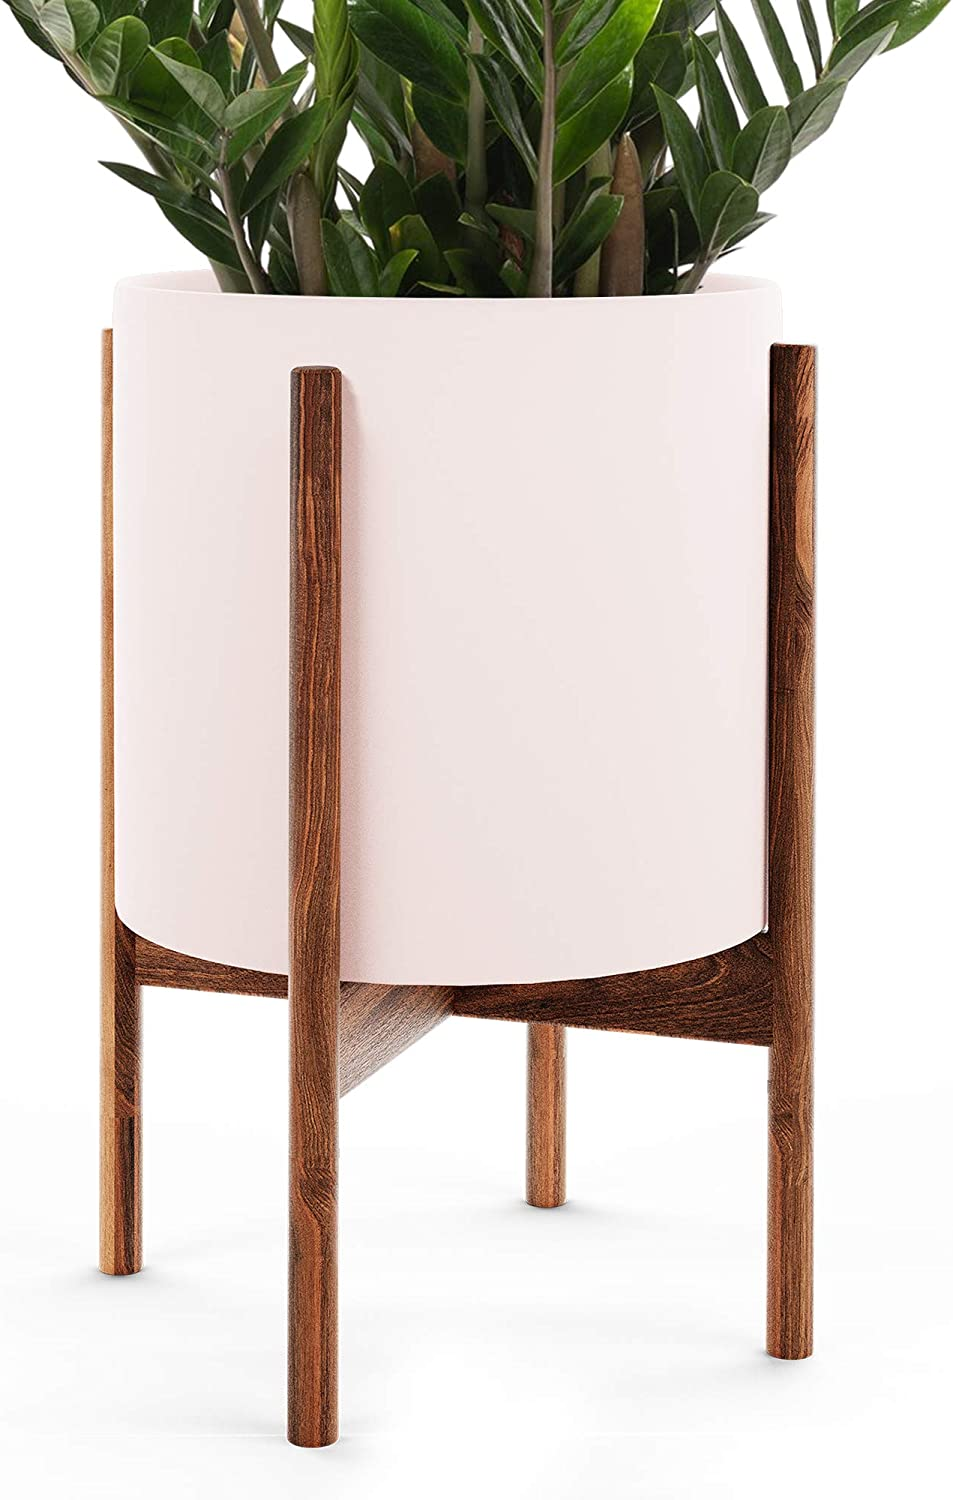 Amazon Com Omysa Mid Century Plant Stand With Pot Included 10 Blush Ceramic Planter With Stand Large Indoor Planter Pot For Plants Trees Flowers 6 Colors White Black Peach